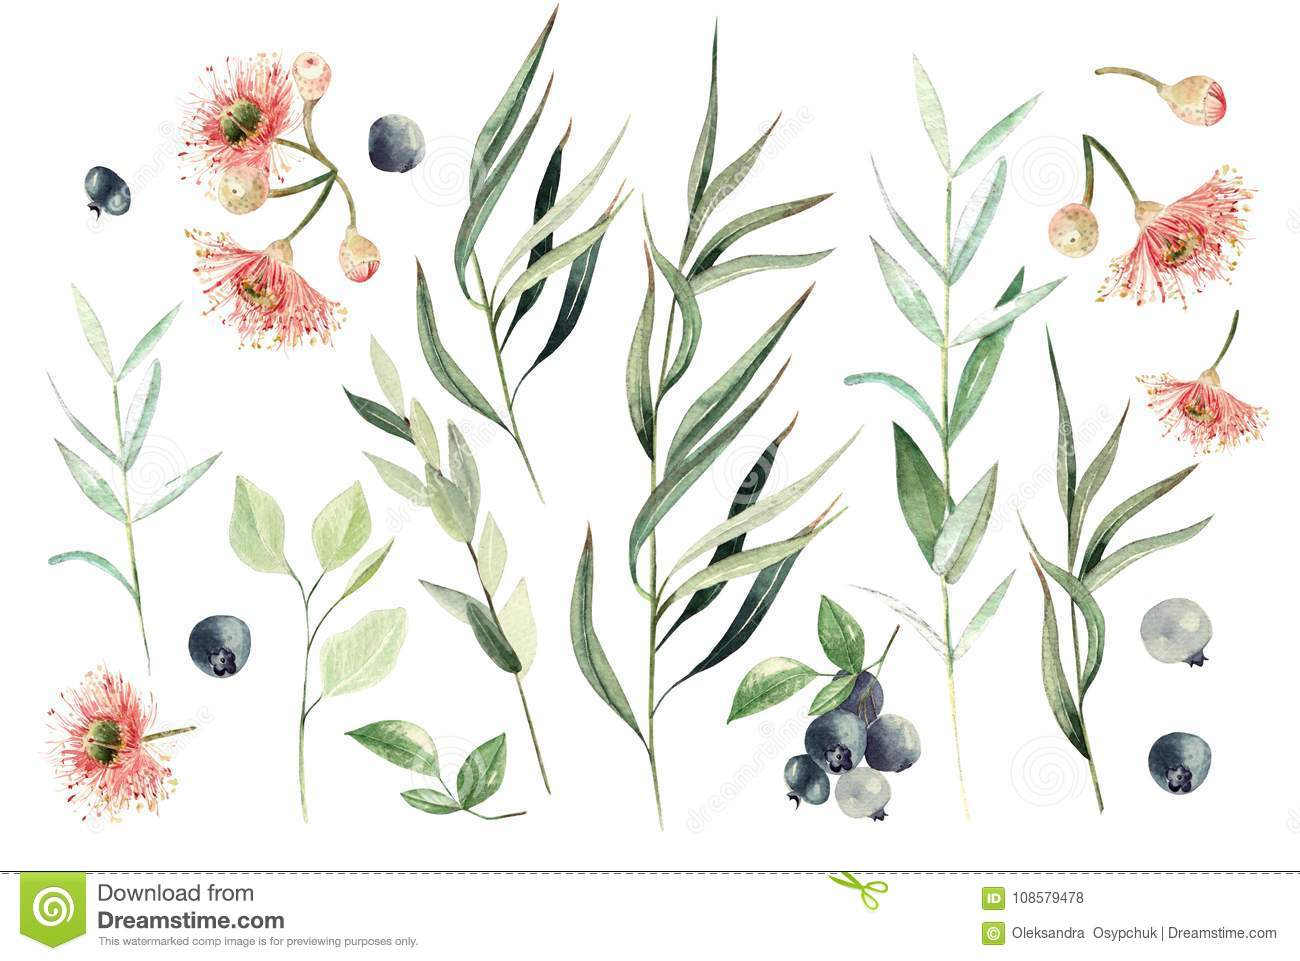 Watercolor eucalyptus set. Hand painted eucalyptus elements and berry. Floral illustration isolated on white background.